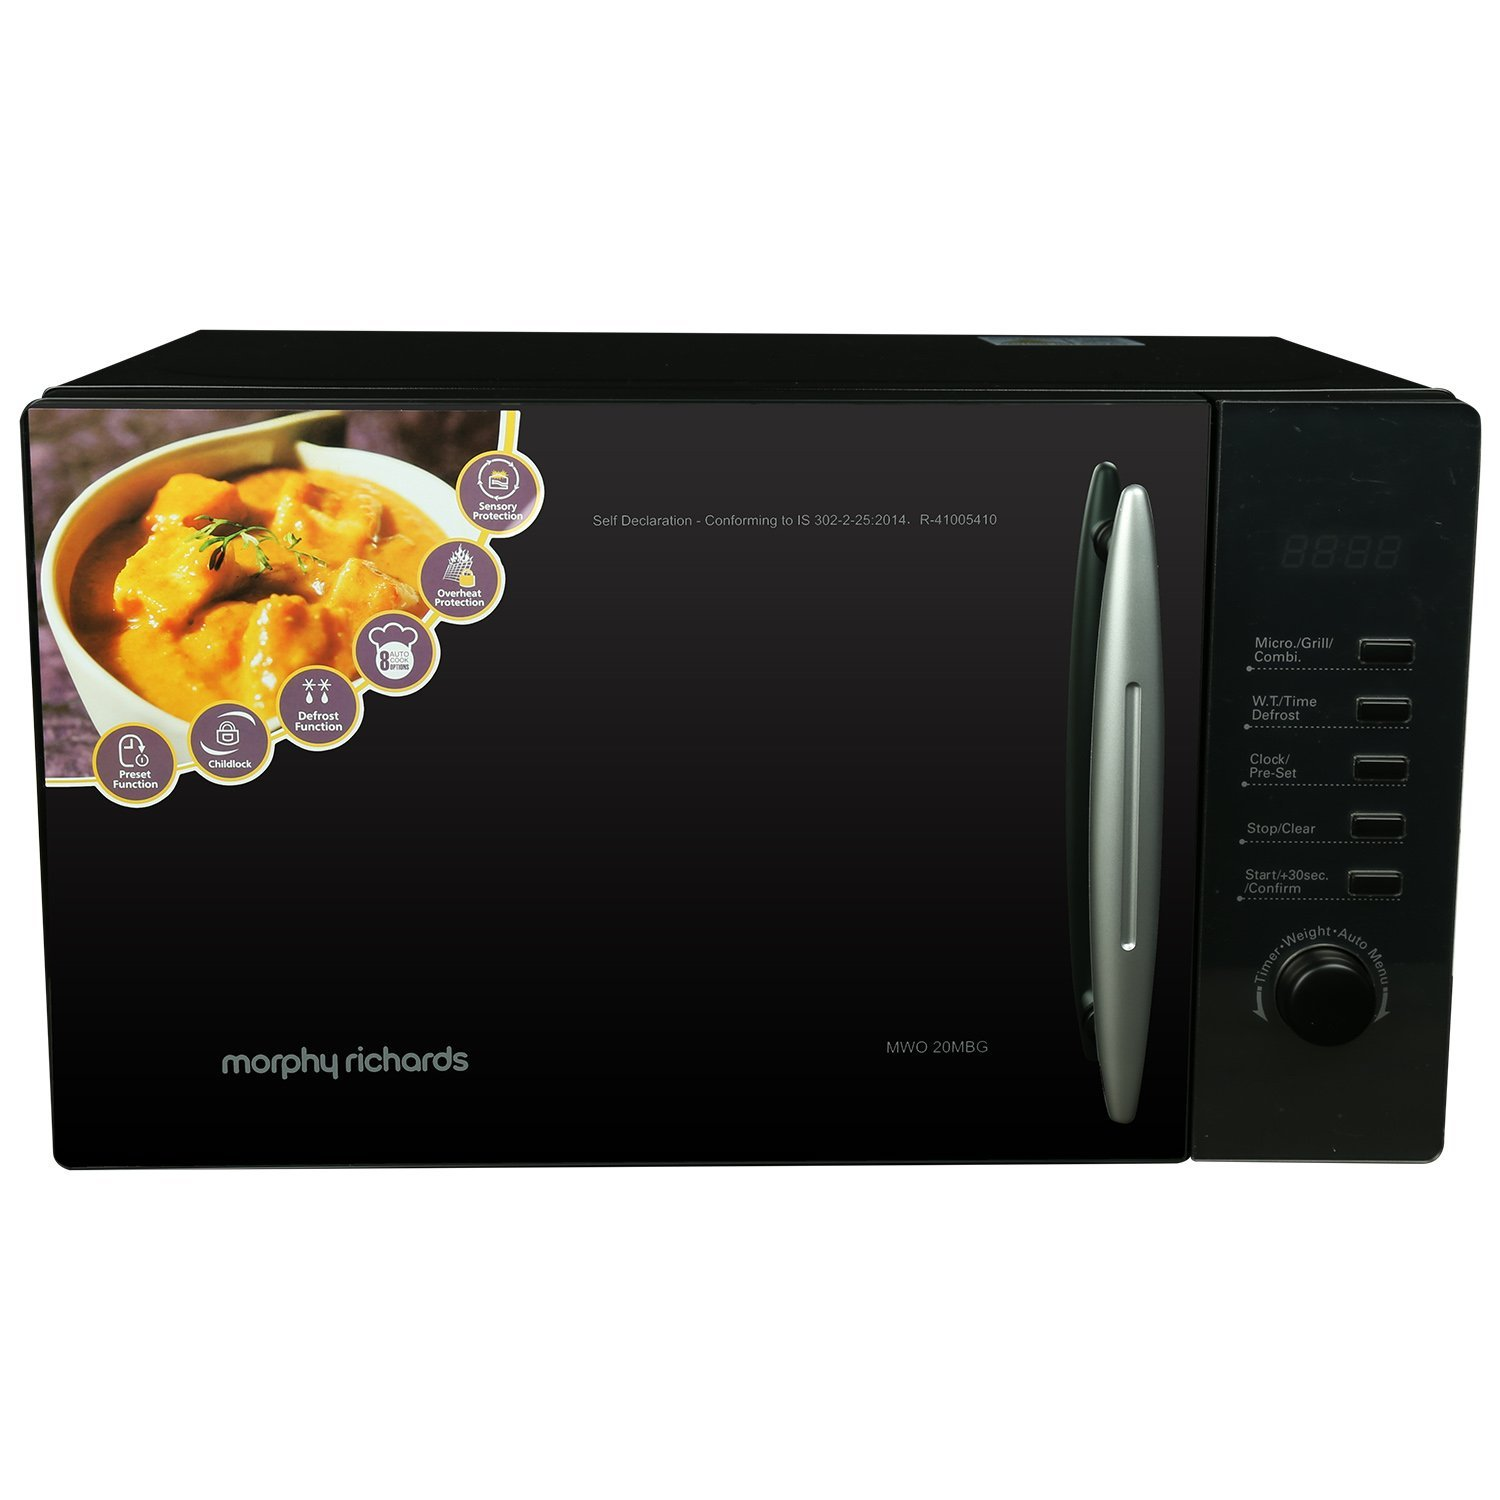 Morphy Richards 20 L Grill Microwave Oven (20MBG, Black)